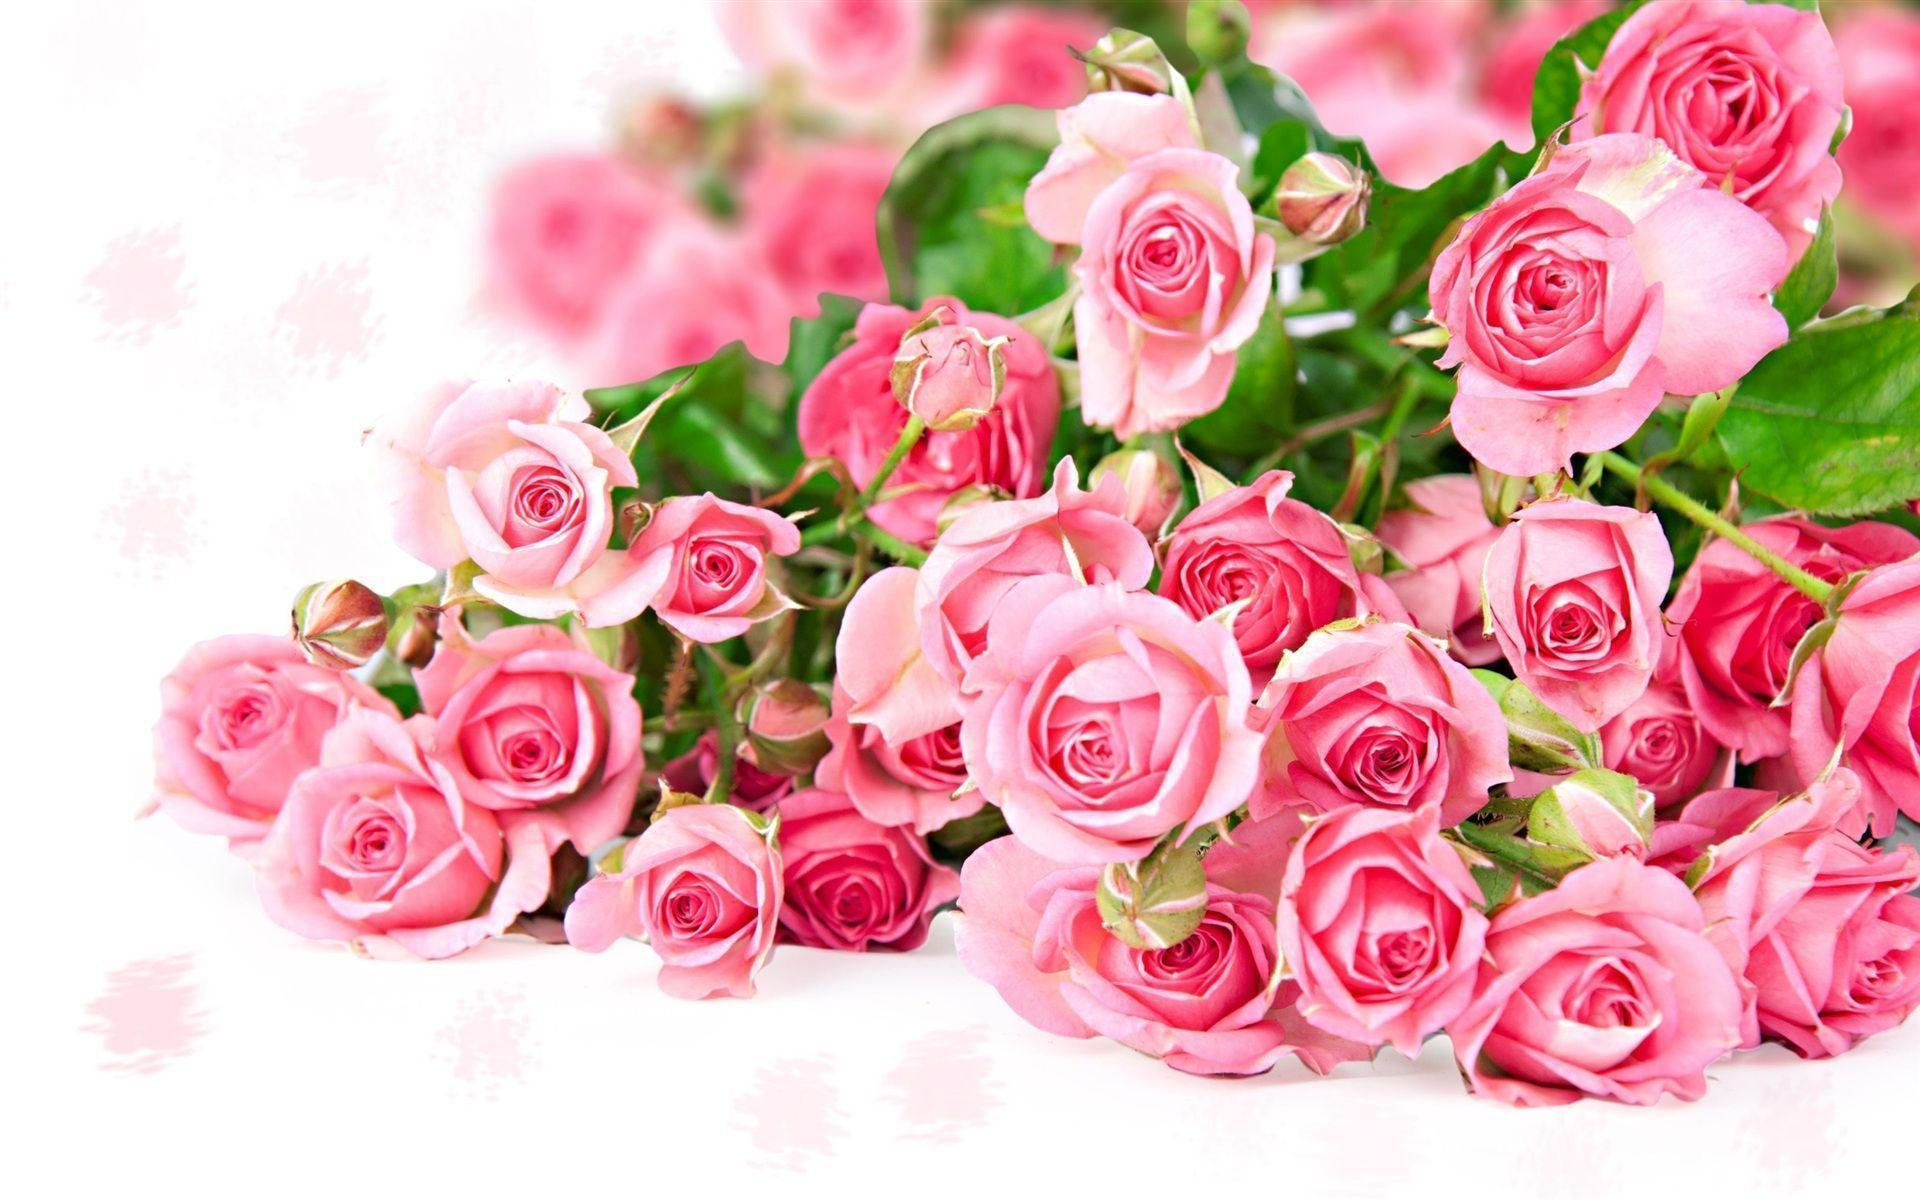 Flowers Bouquet Roses Wallpapers Image 19689 Full HD Wallpapers